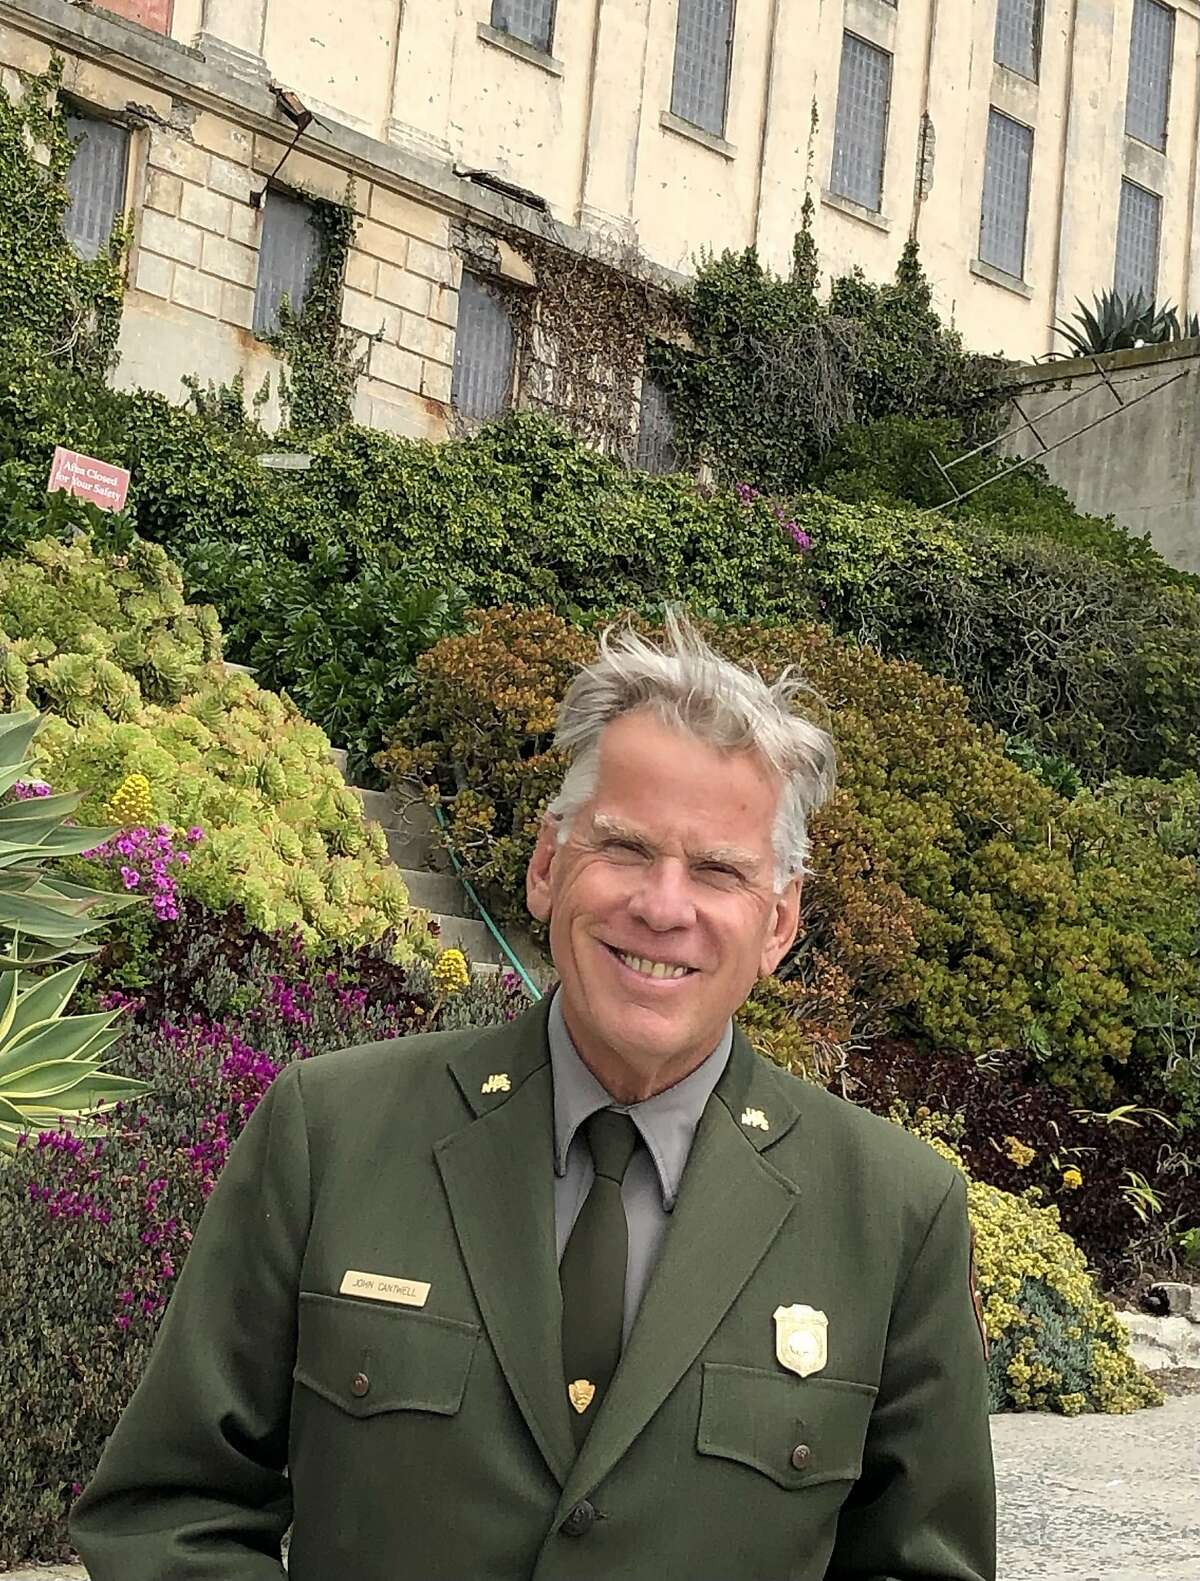 Ranger John Cantwell has been a force at Alcatraz. For years, he organized reunions, bringing back former inmates, former guards and families who lived on the island.